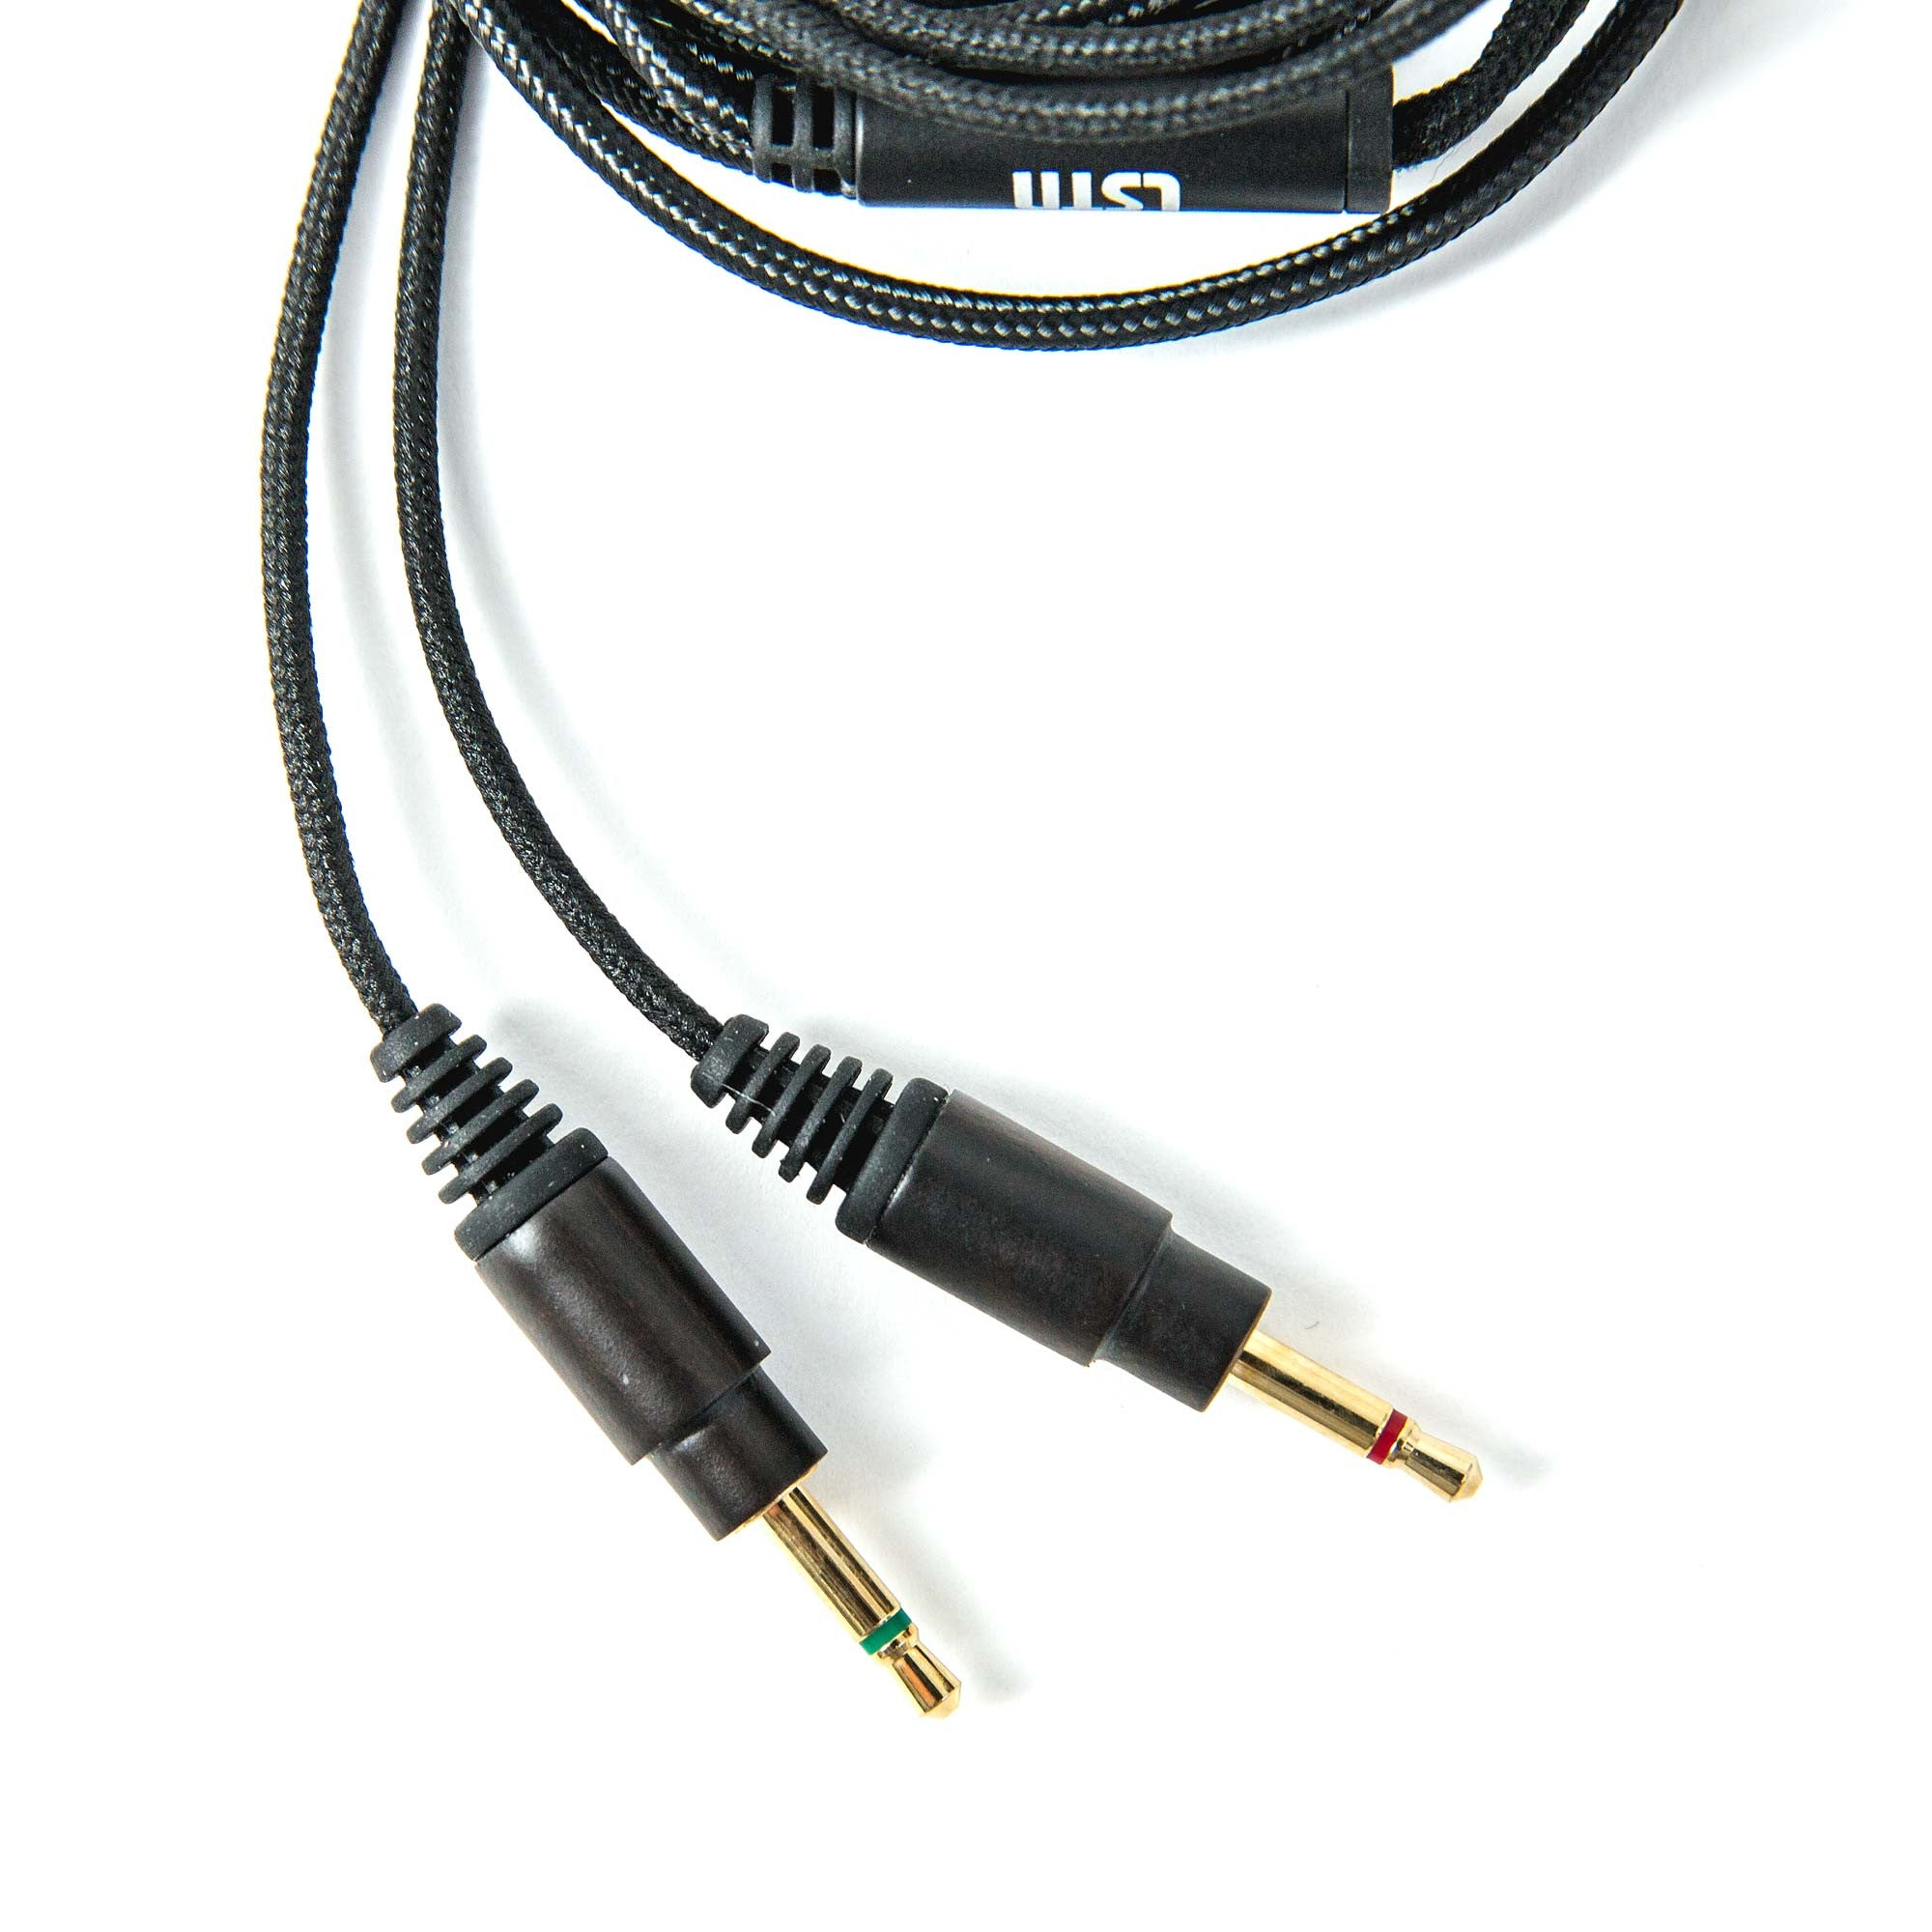 Nylon Replacement Cables w/ Volume Control for Wired Headphones - Dark Wood